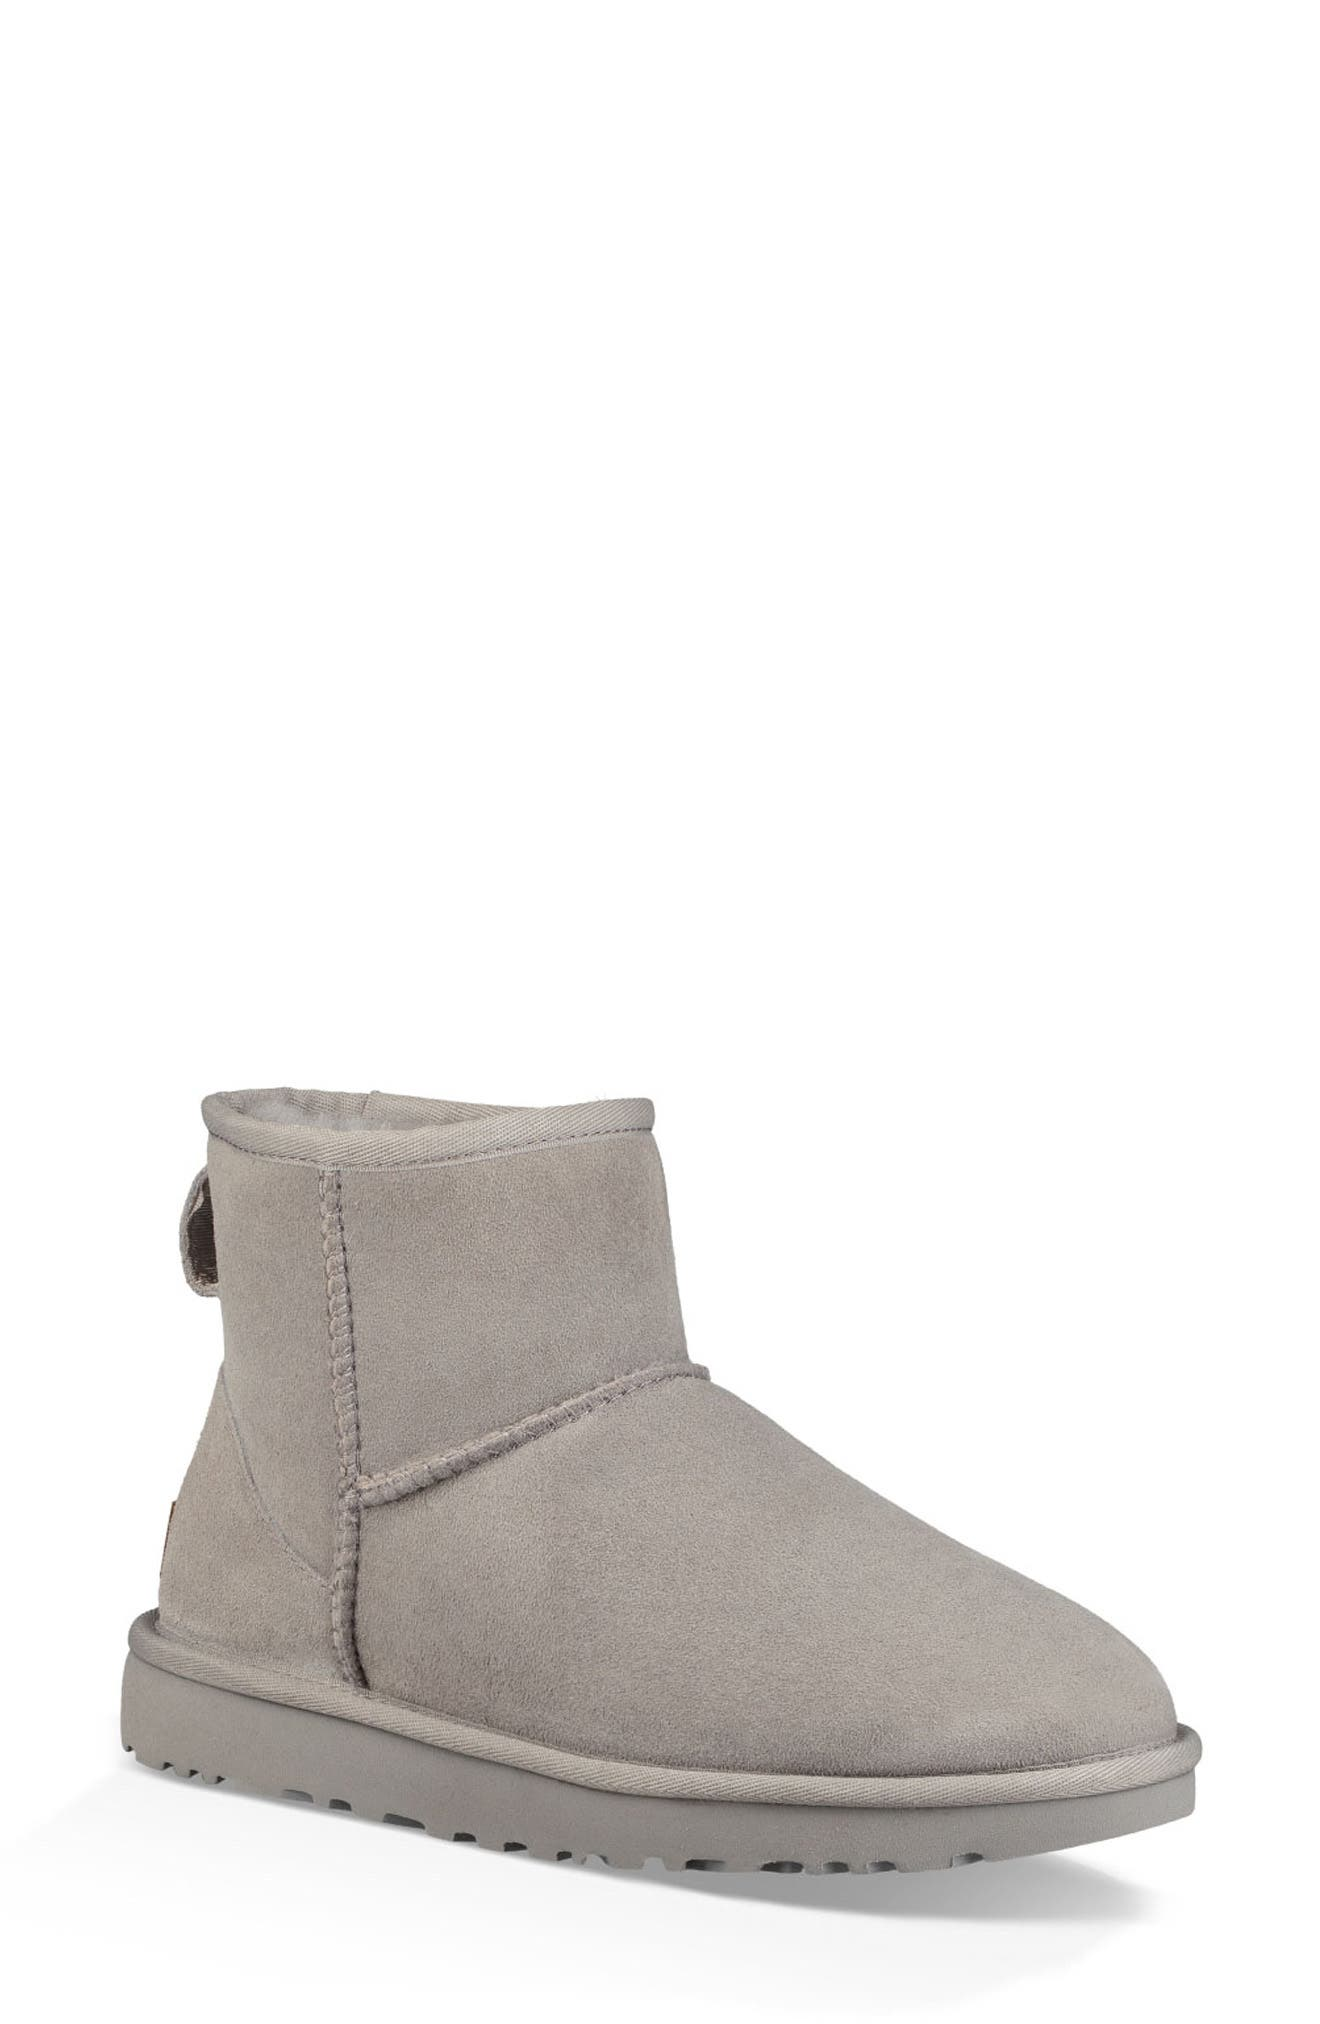 'Classic Mini II' Genuine Shearling Lined Boot,                         Main,                         color, SEAL SUEDE